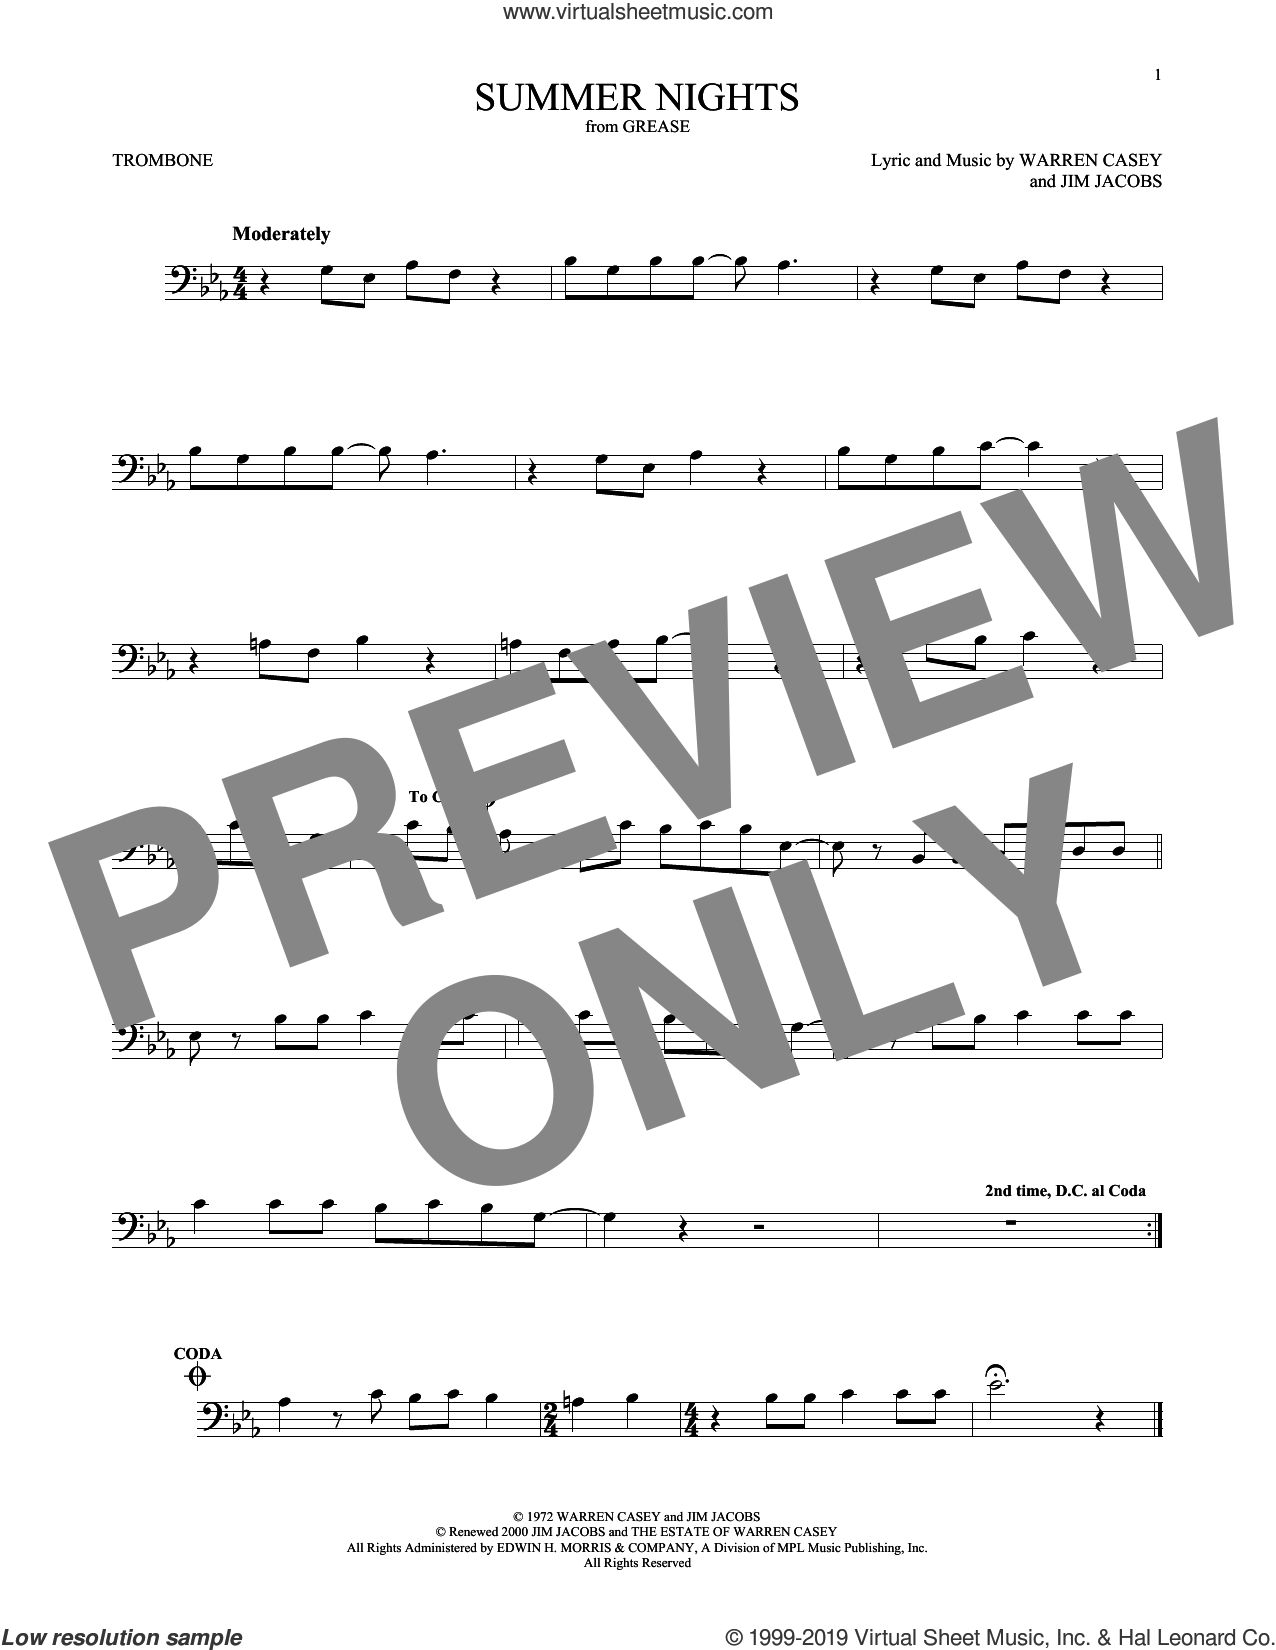 Summer Nights sheet music for trombone solo by Jim Jacobs and Warren Casey, intermediate skill level